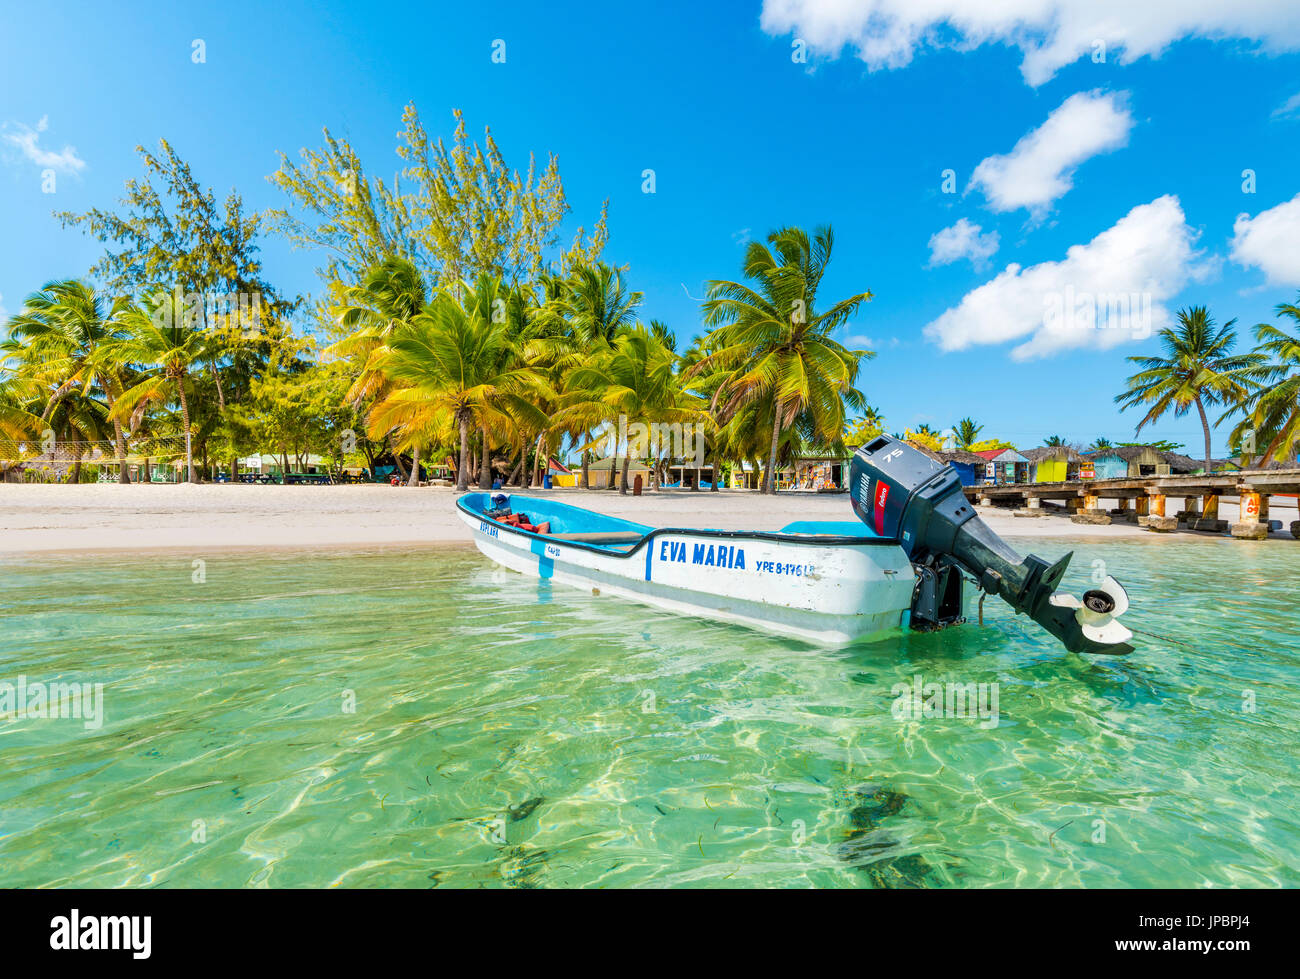 Mano Juan, Saona Island, East National Park (Parque Nacional del Este), Dominican Republic, Caribbean Sea. Stock Photo